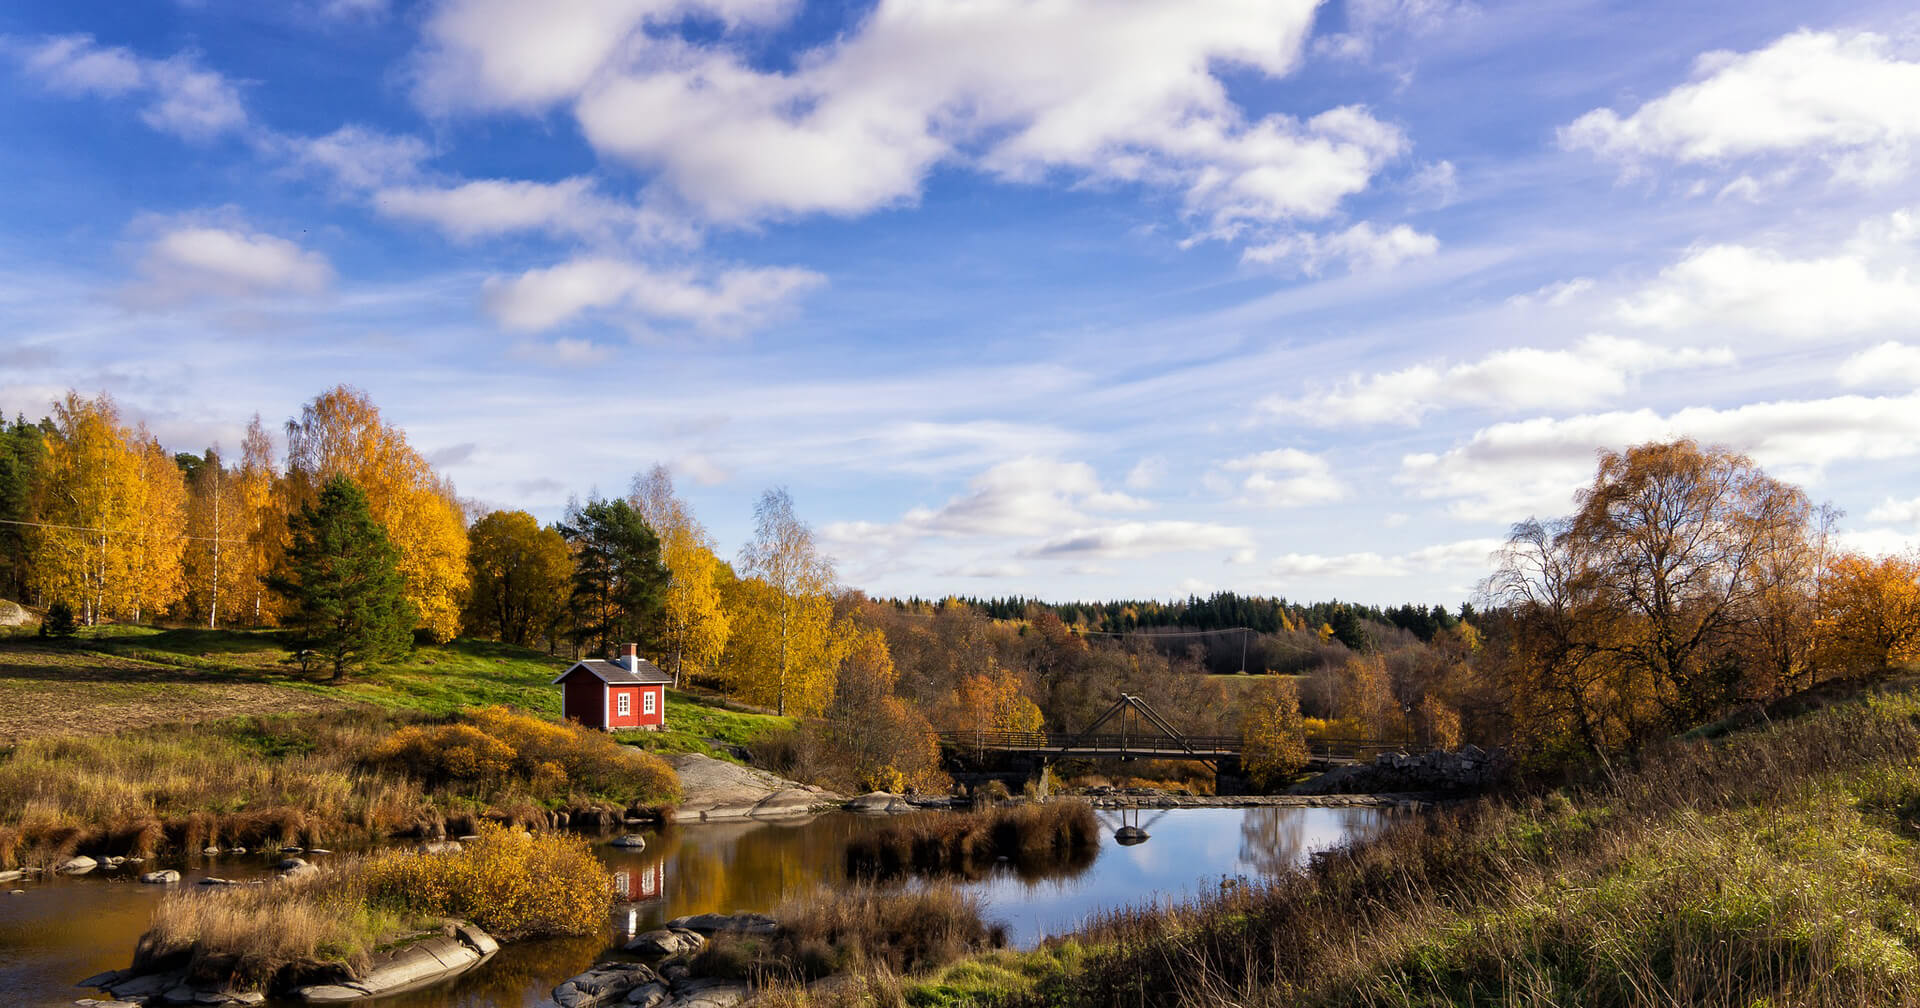 A view of the Finnish country side